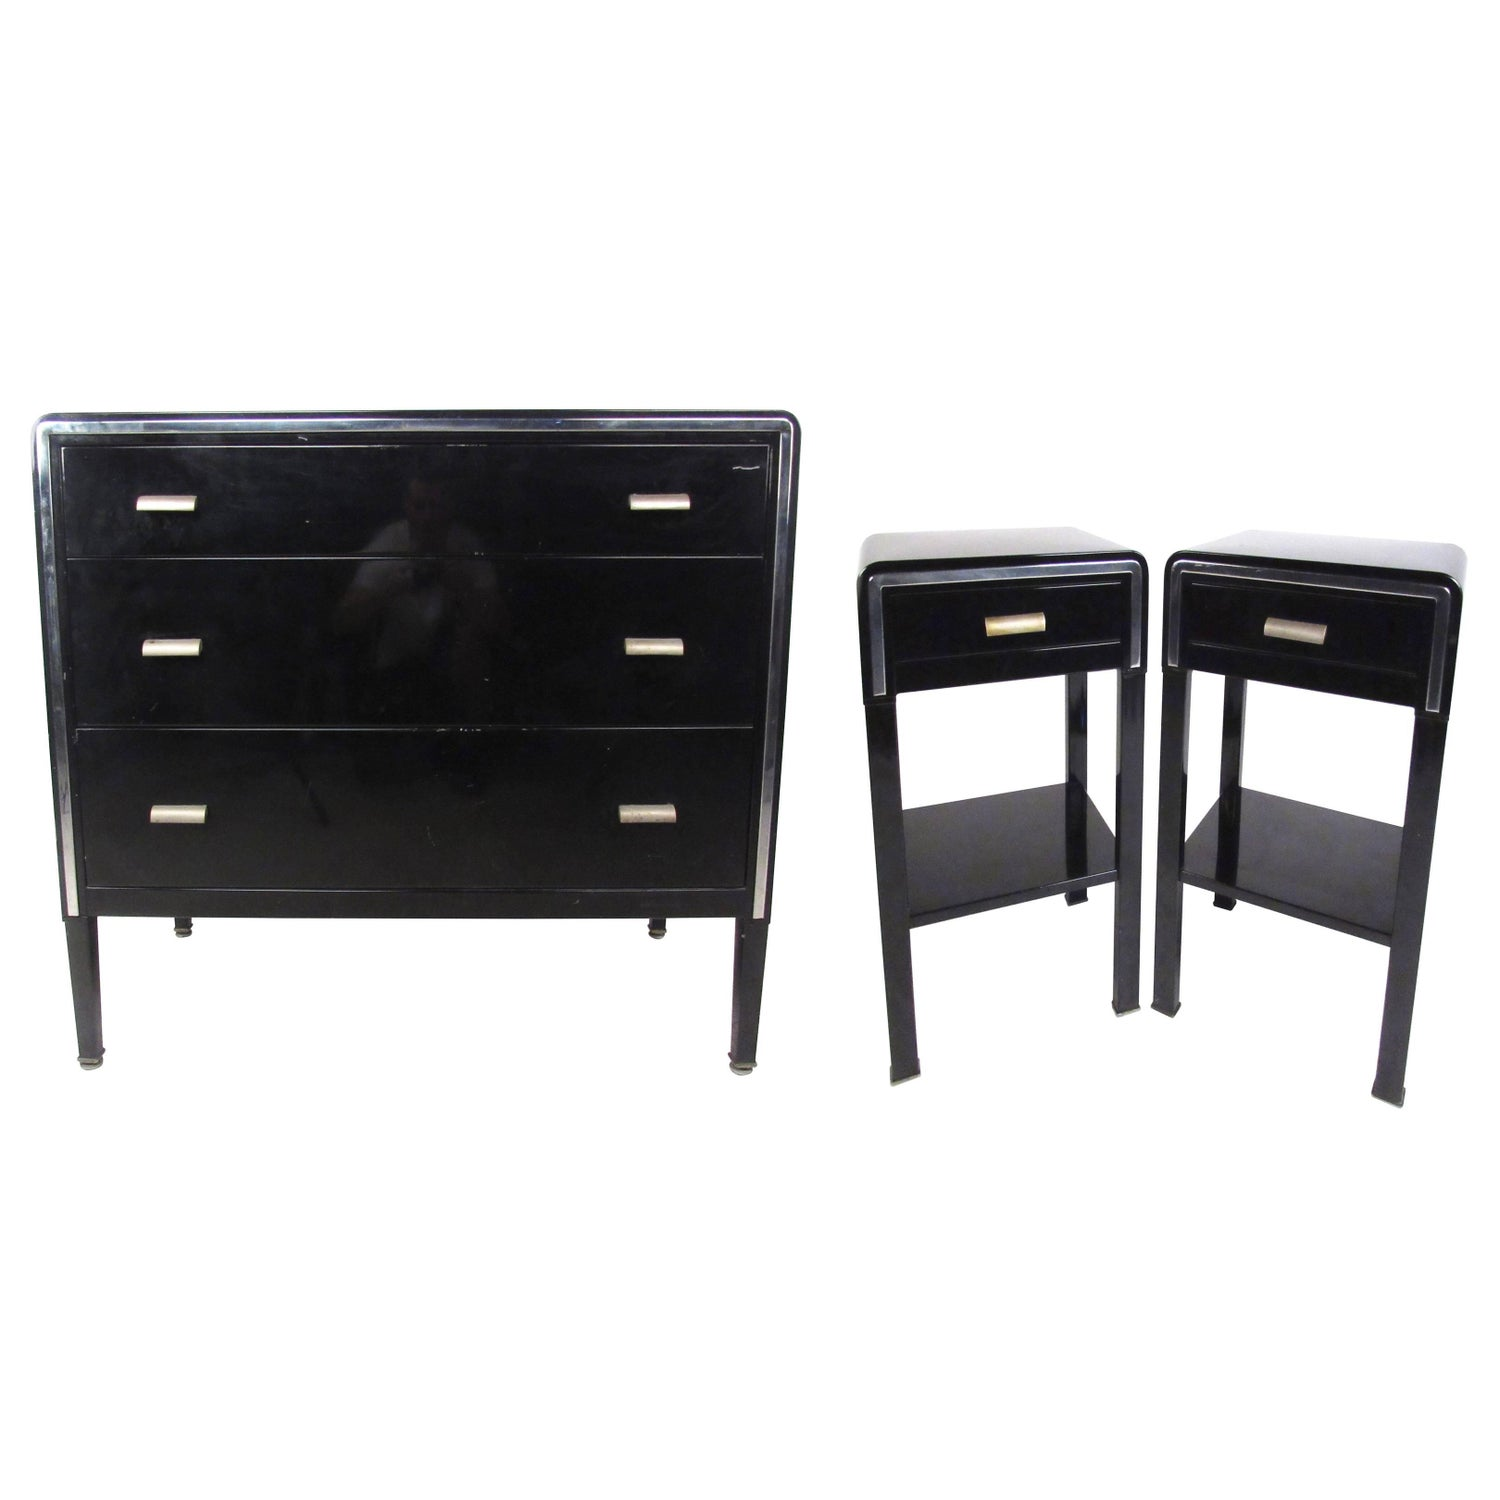 simmons monterey dresser rustic white. stylish bedroom set by norman bel geddes for simmons monterey dresser rustic white w